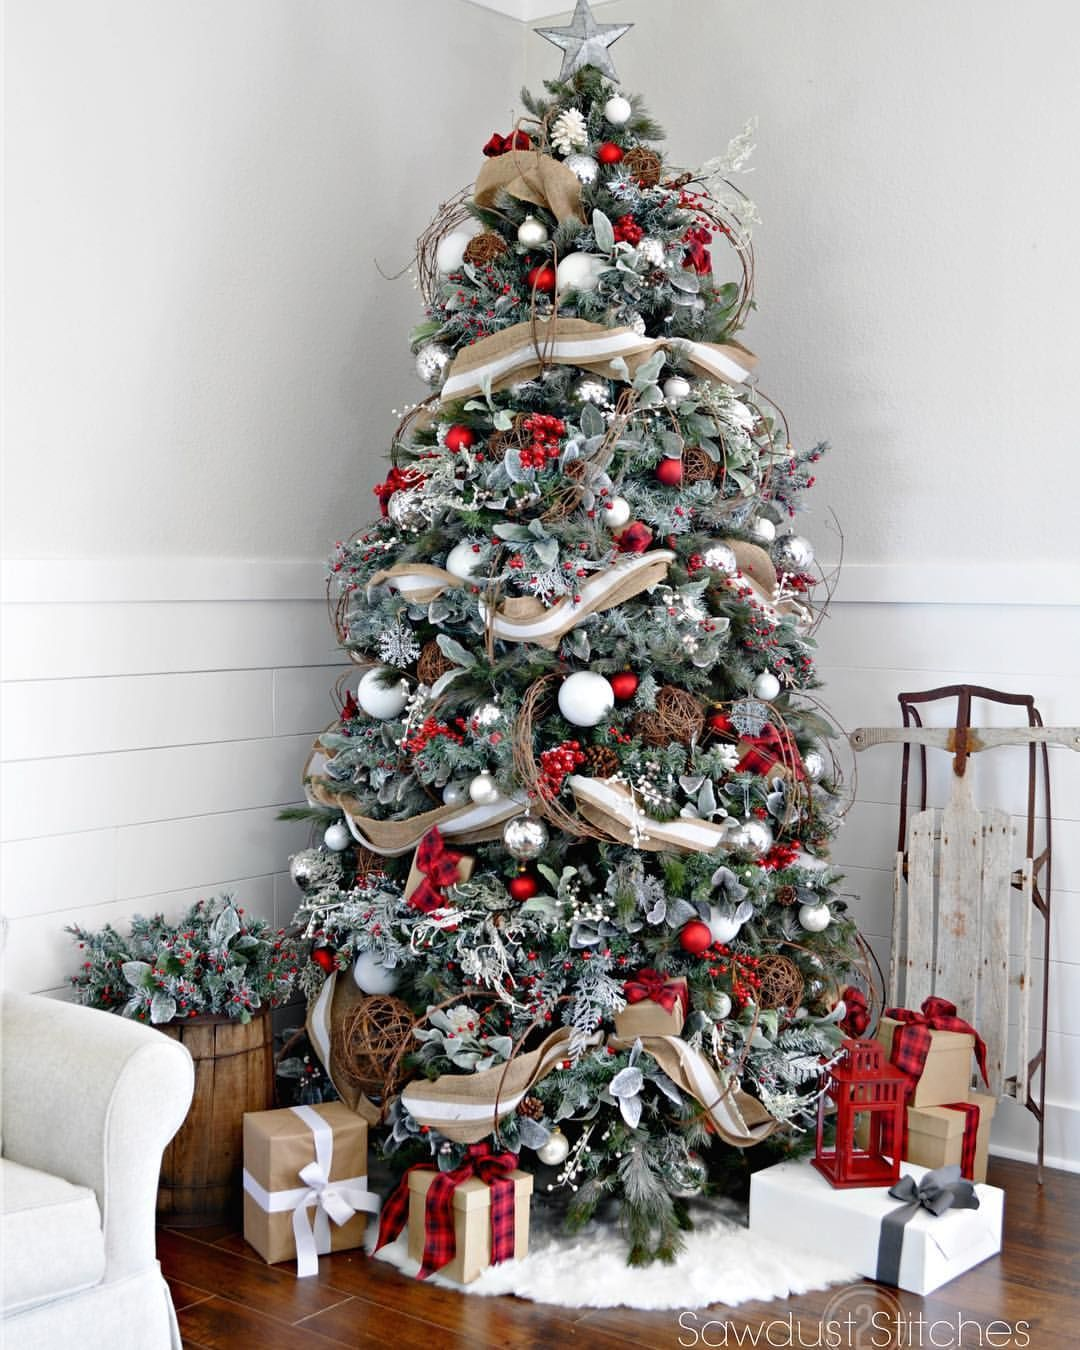 376 Likes 12 Comments Corey Decker Sawdust2stitches On Instagram Let S Take A Lo Red And Gold Christmas Tree Rustic Christmas Tree Cool Christmas Trees